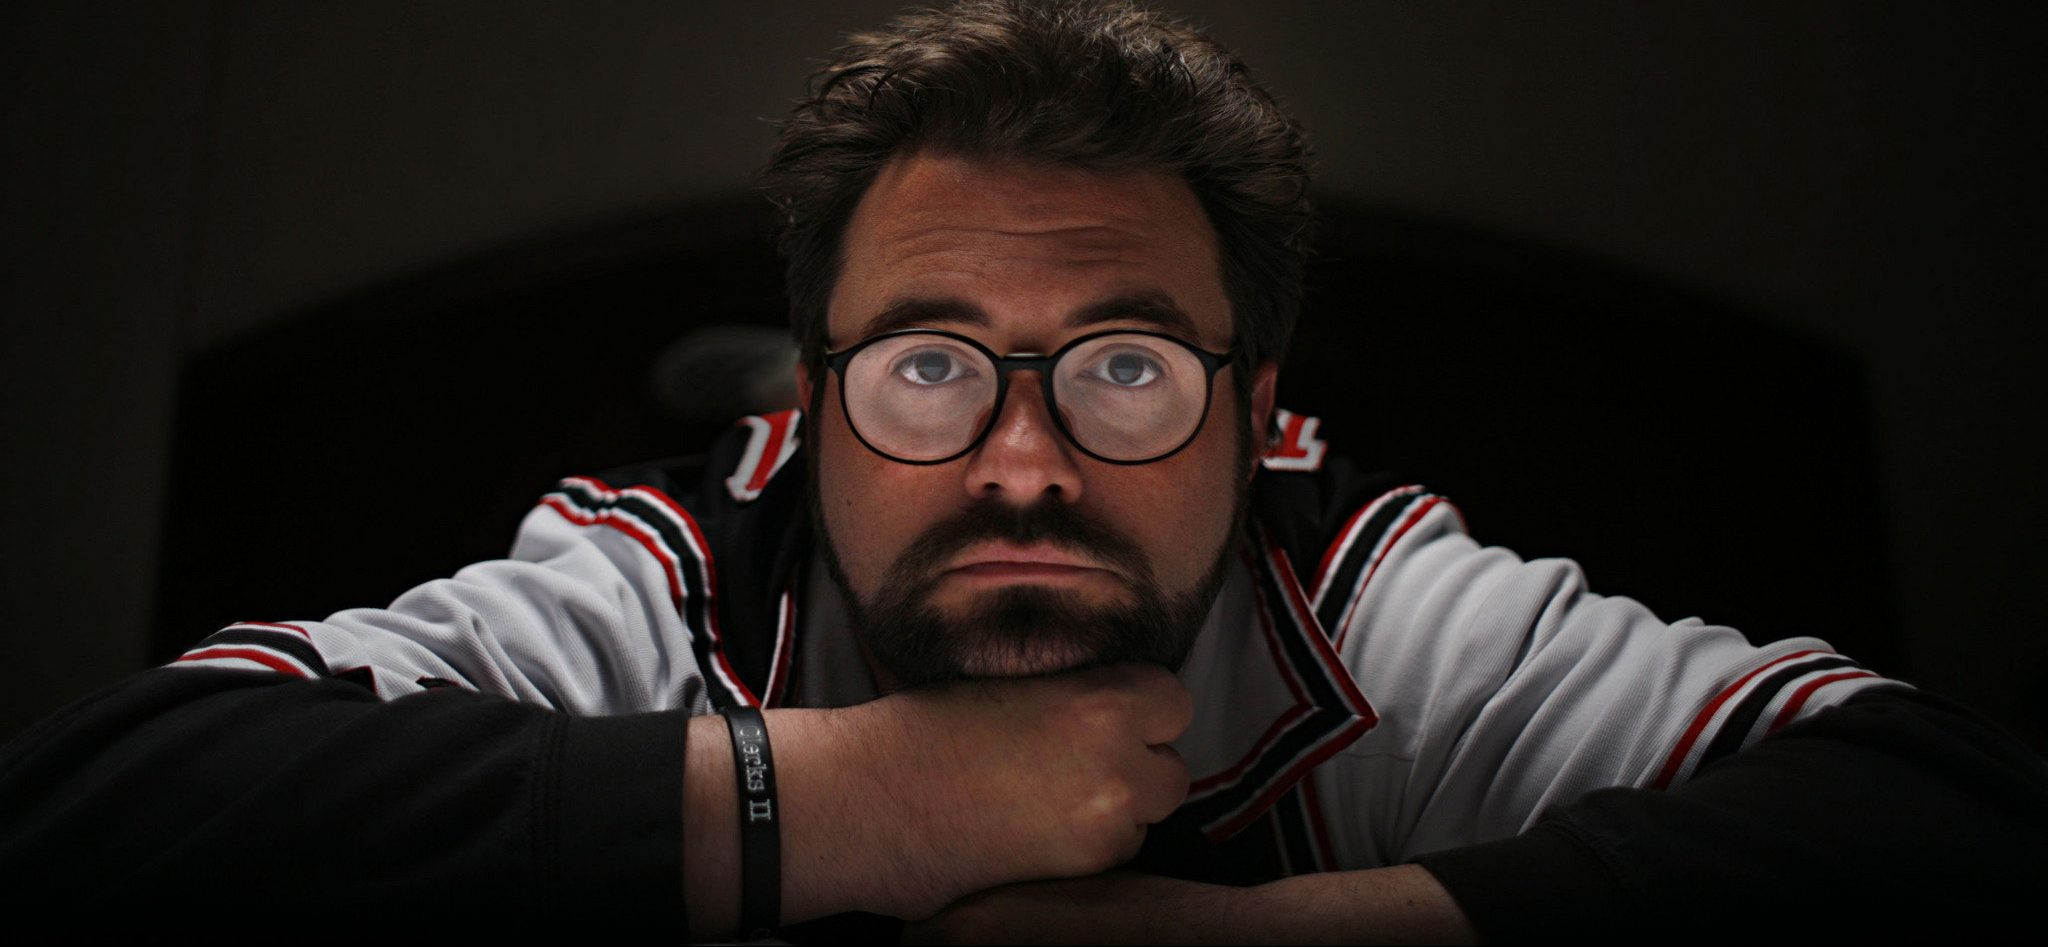 kevin-smith-largejpg-164652be968814fa